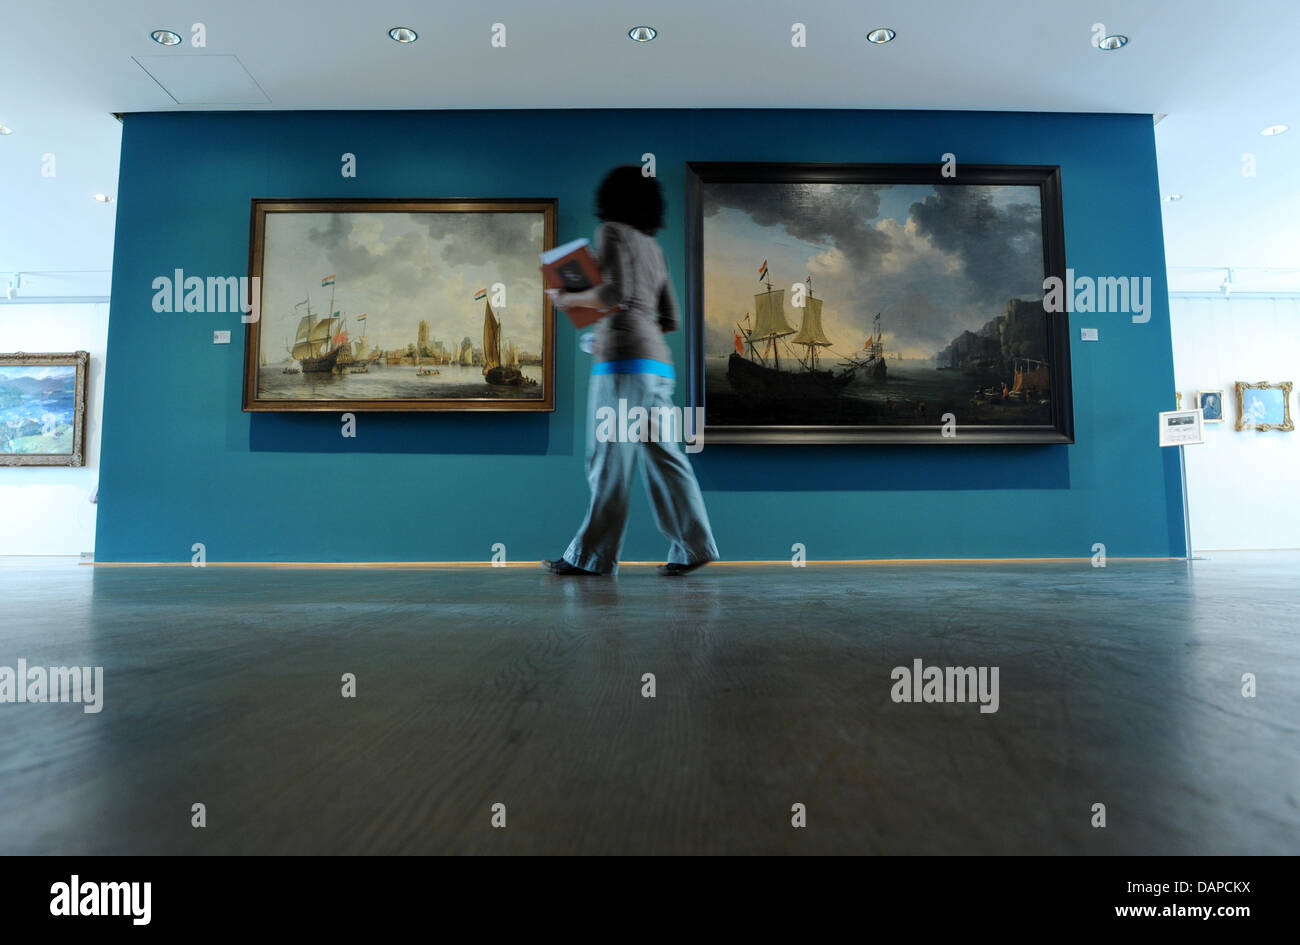 A woman walks past two paintings at the Picture Gallery at the Willhelmshoehe Palace in Kassel, Germany, 11 August - Stock Image